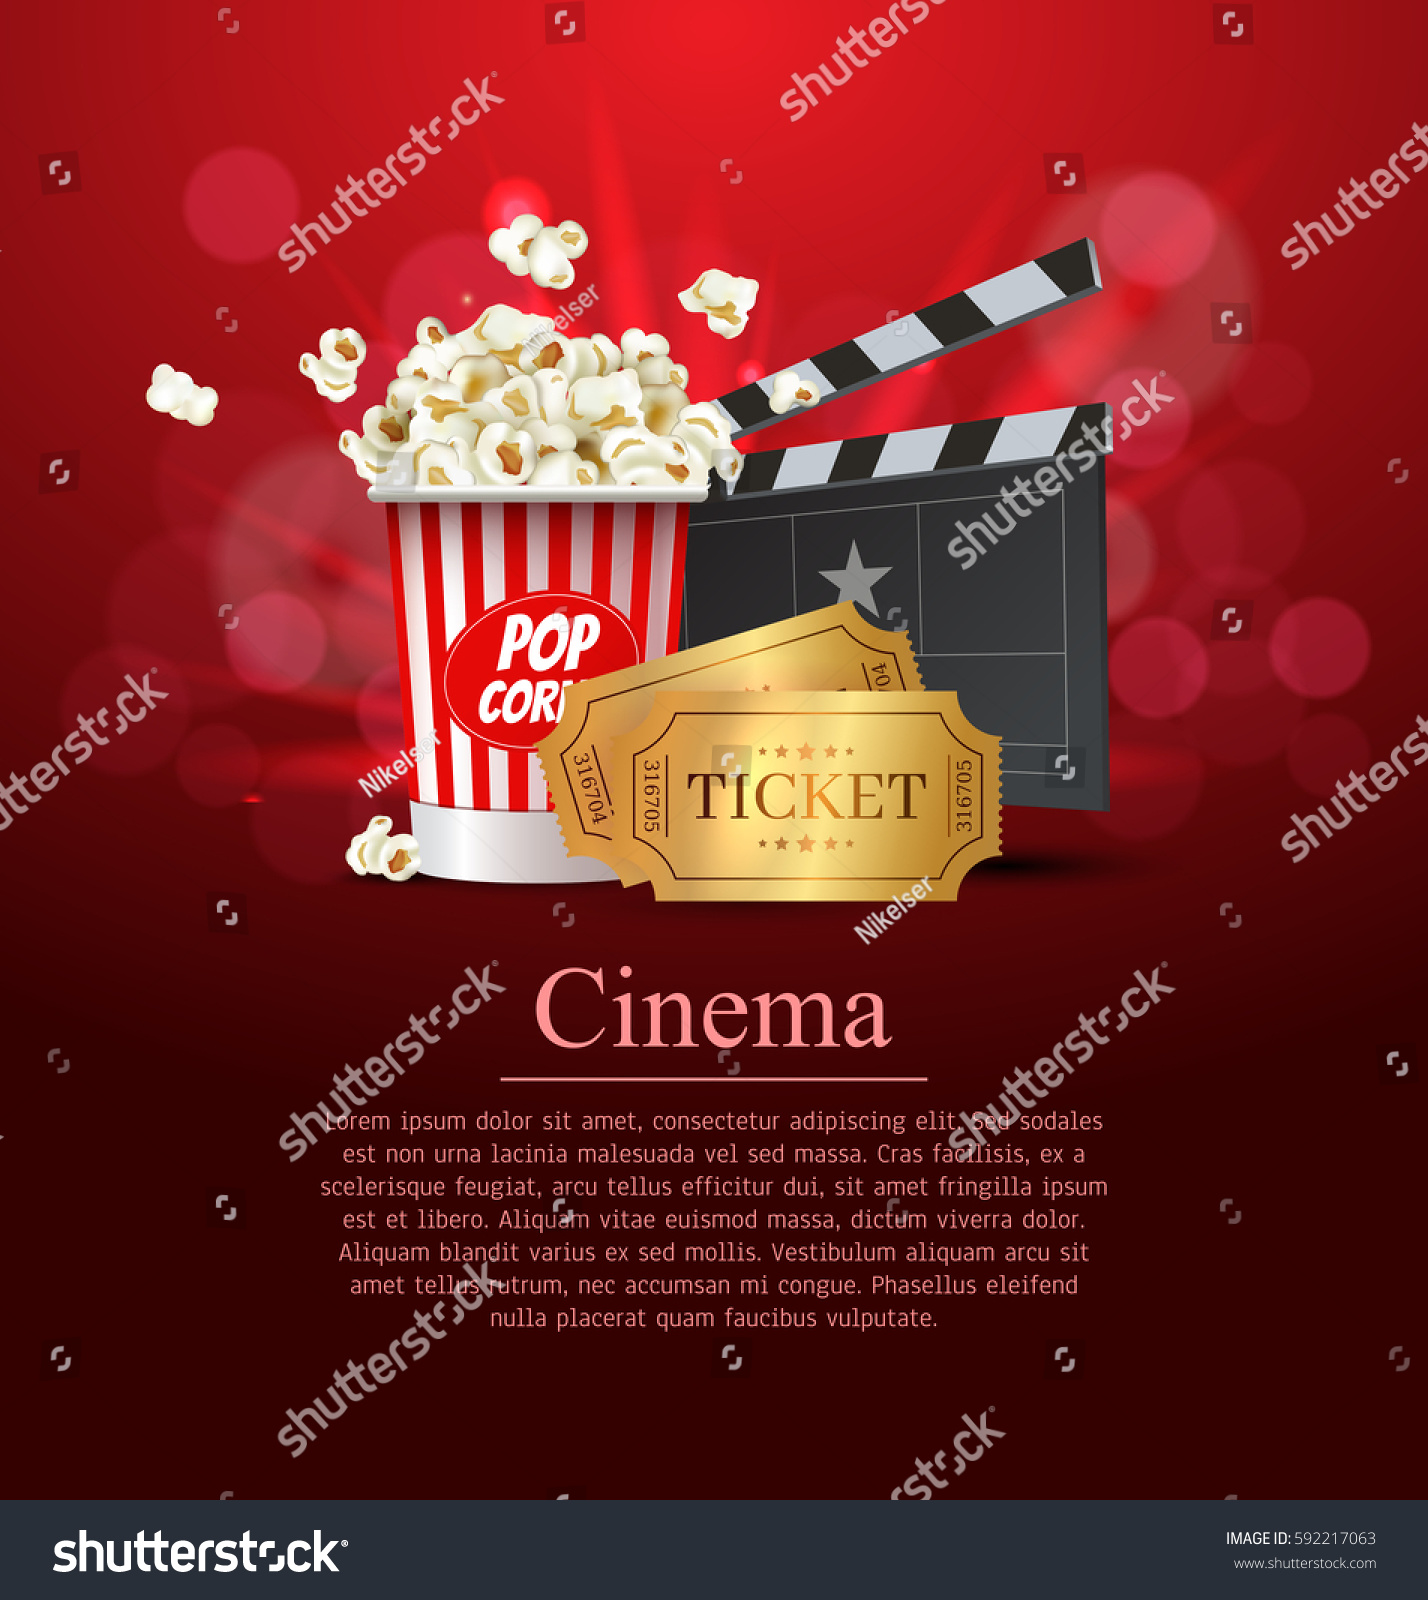 Poster design vector - Red Cinema Movie Design Poster Design Vector Template Banner For Movie Premiere Or Show With